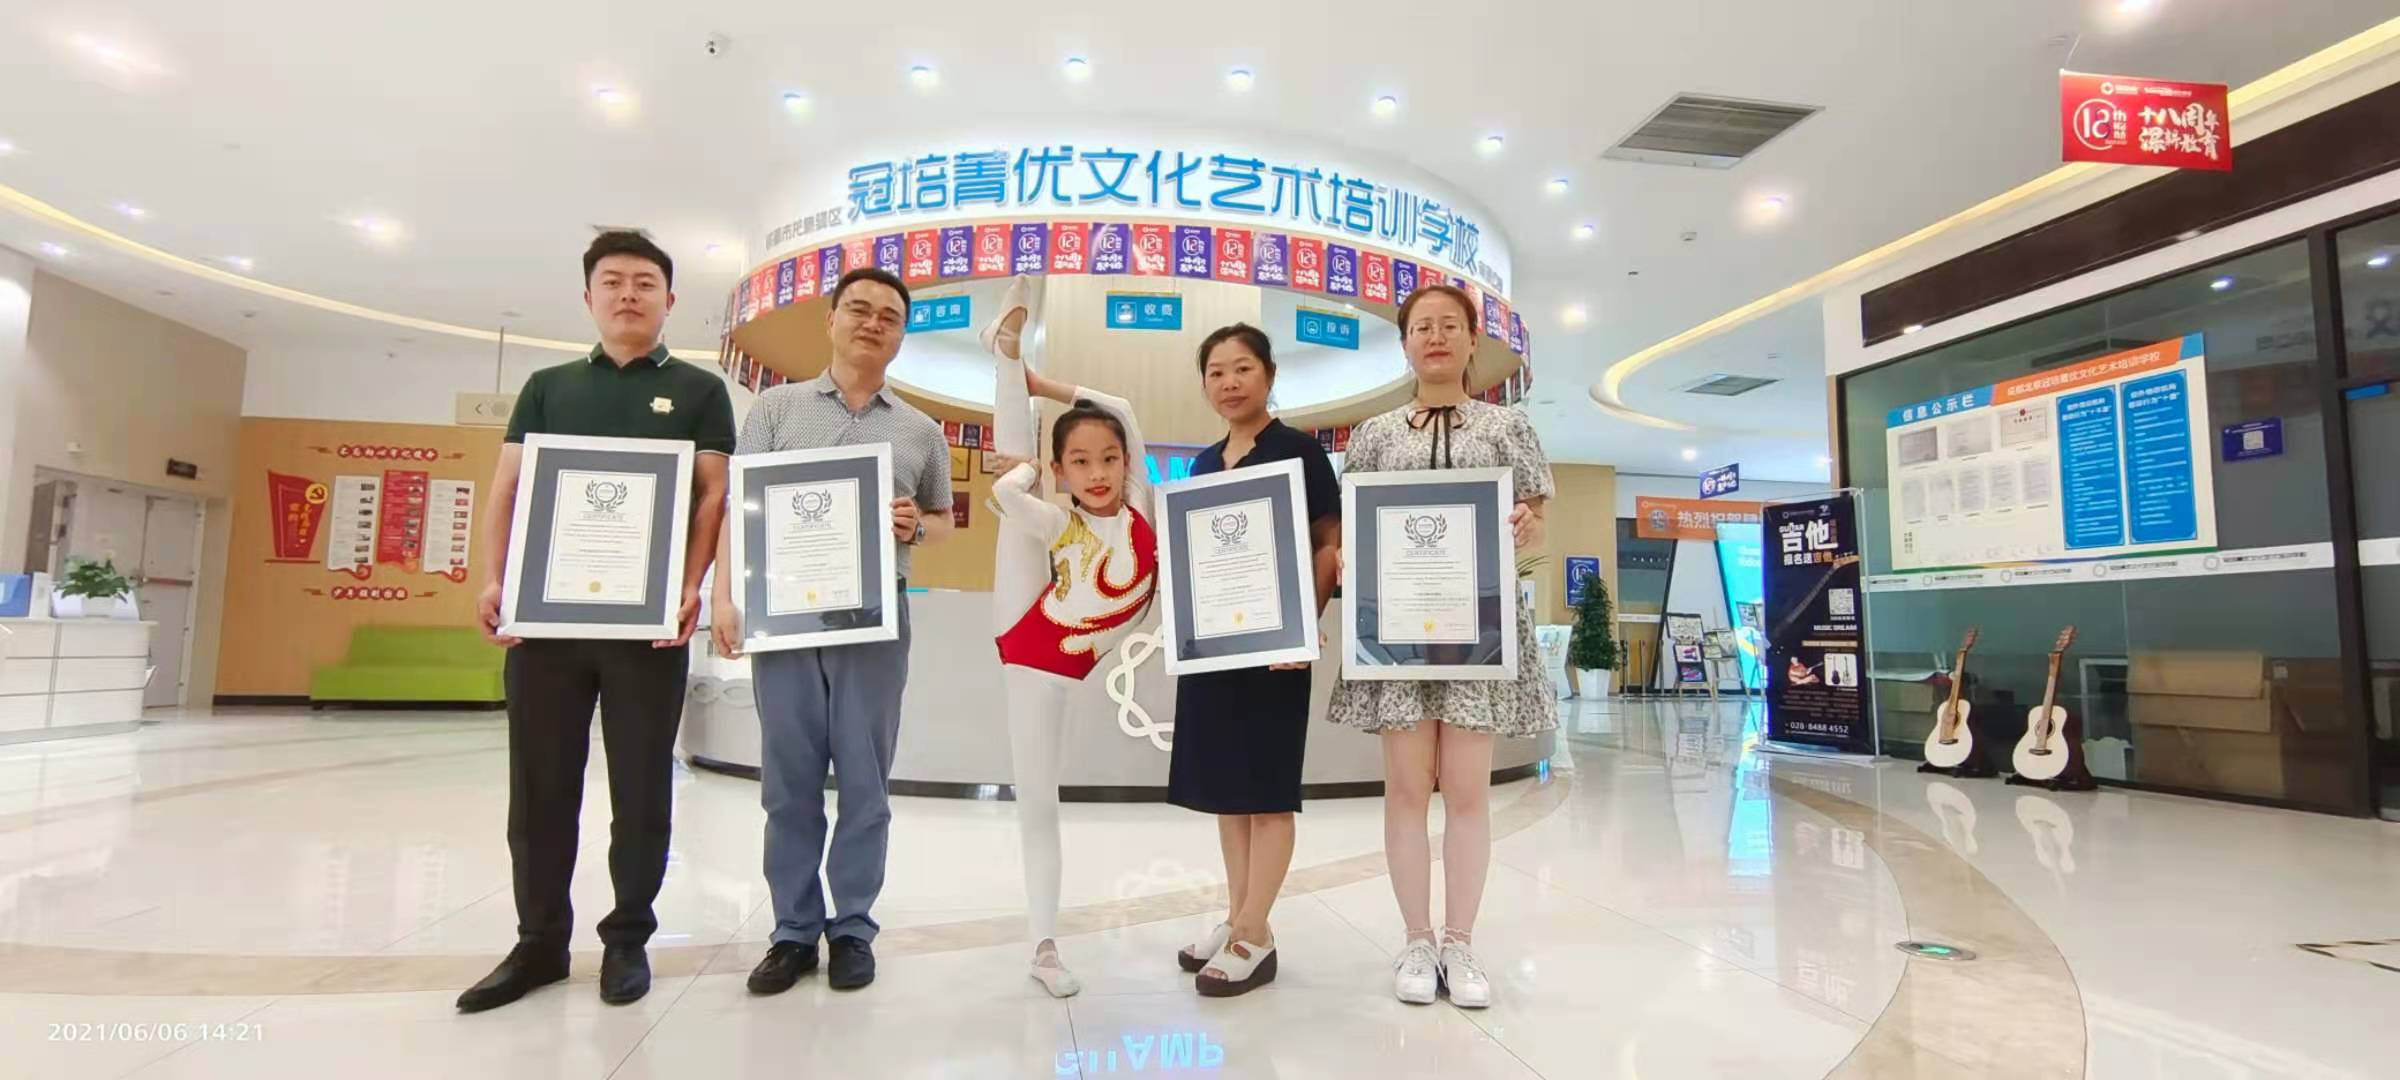 11 years old Chinese girl breaks 4 Unison World Records